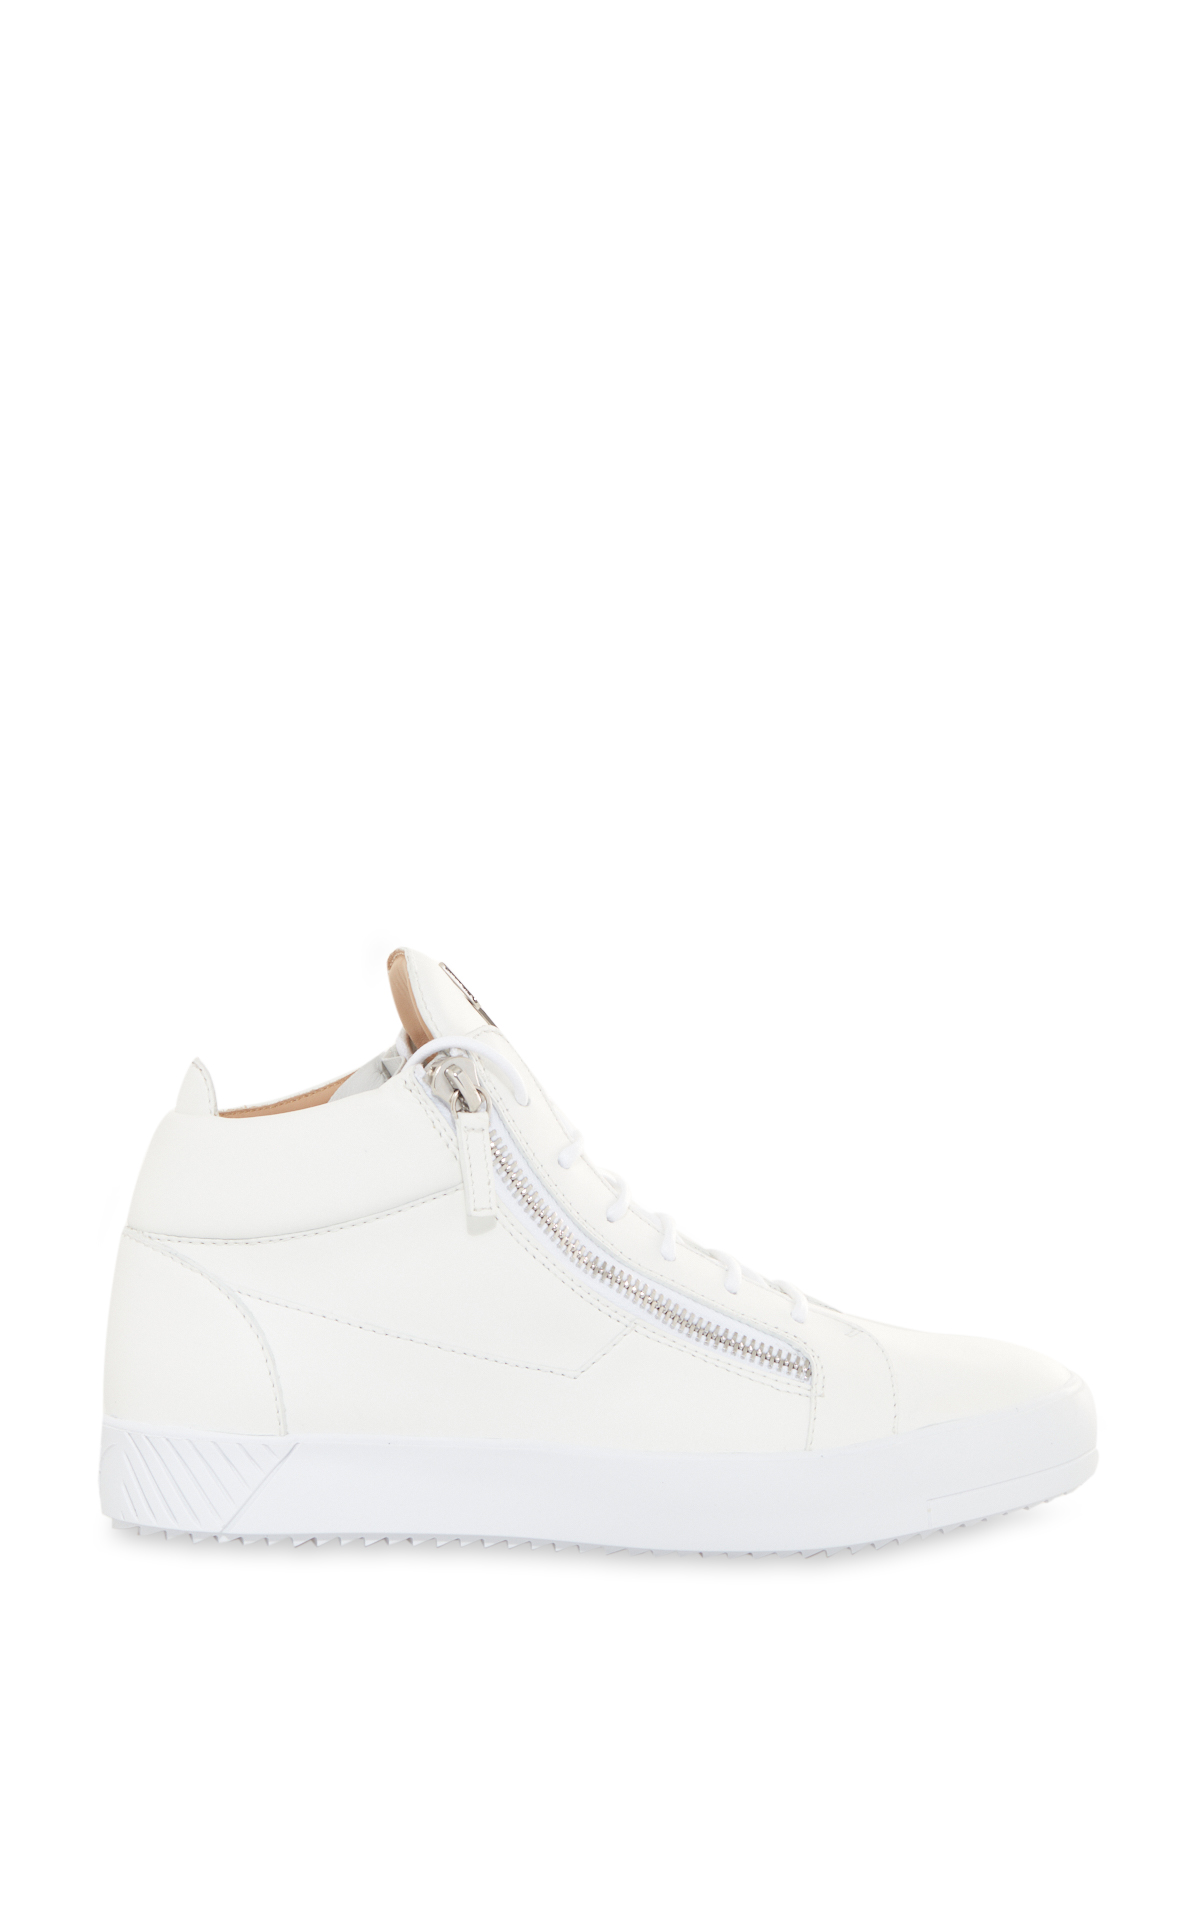 La Vallée Village Guiseppe Zanotti High-top sneakers